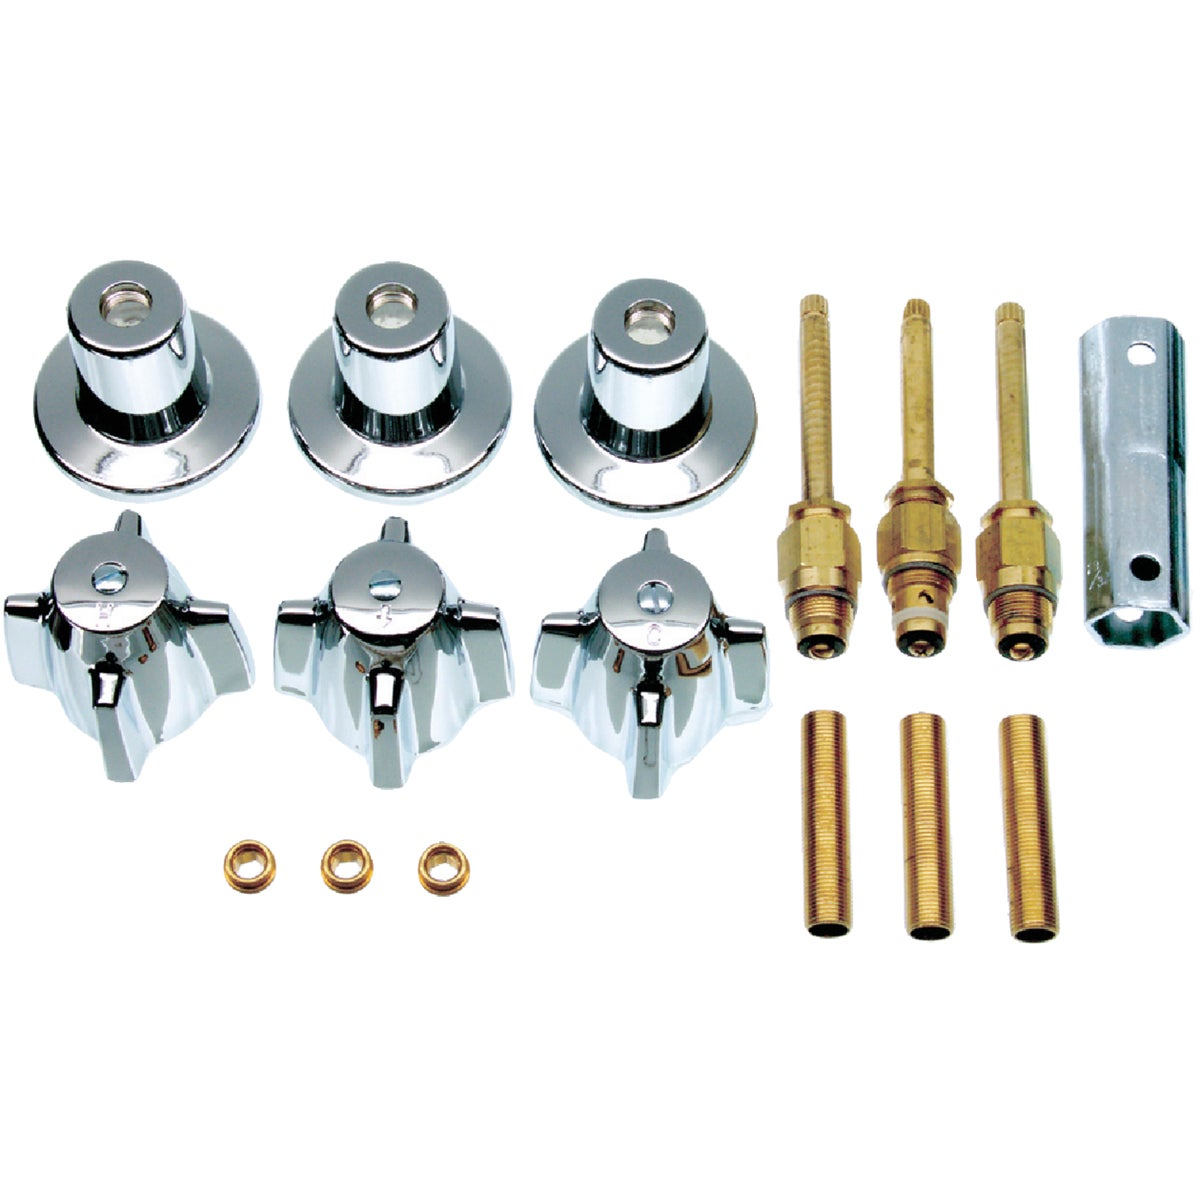 CENTRAL BRASS REPAIR KIT - 39616 by Danco Perfect Match